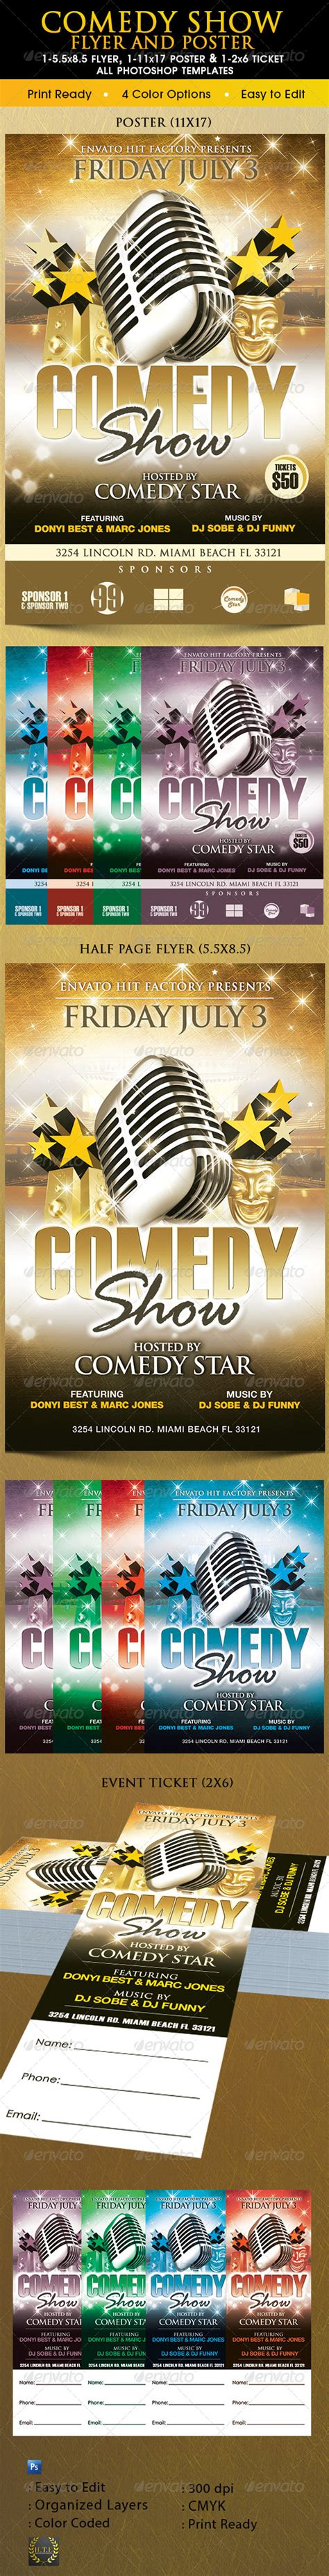 Comedy Show Poster Flyer And Ticket Template By Godserv On Deviantart Comedy Show Ticket Template